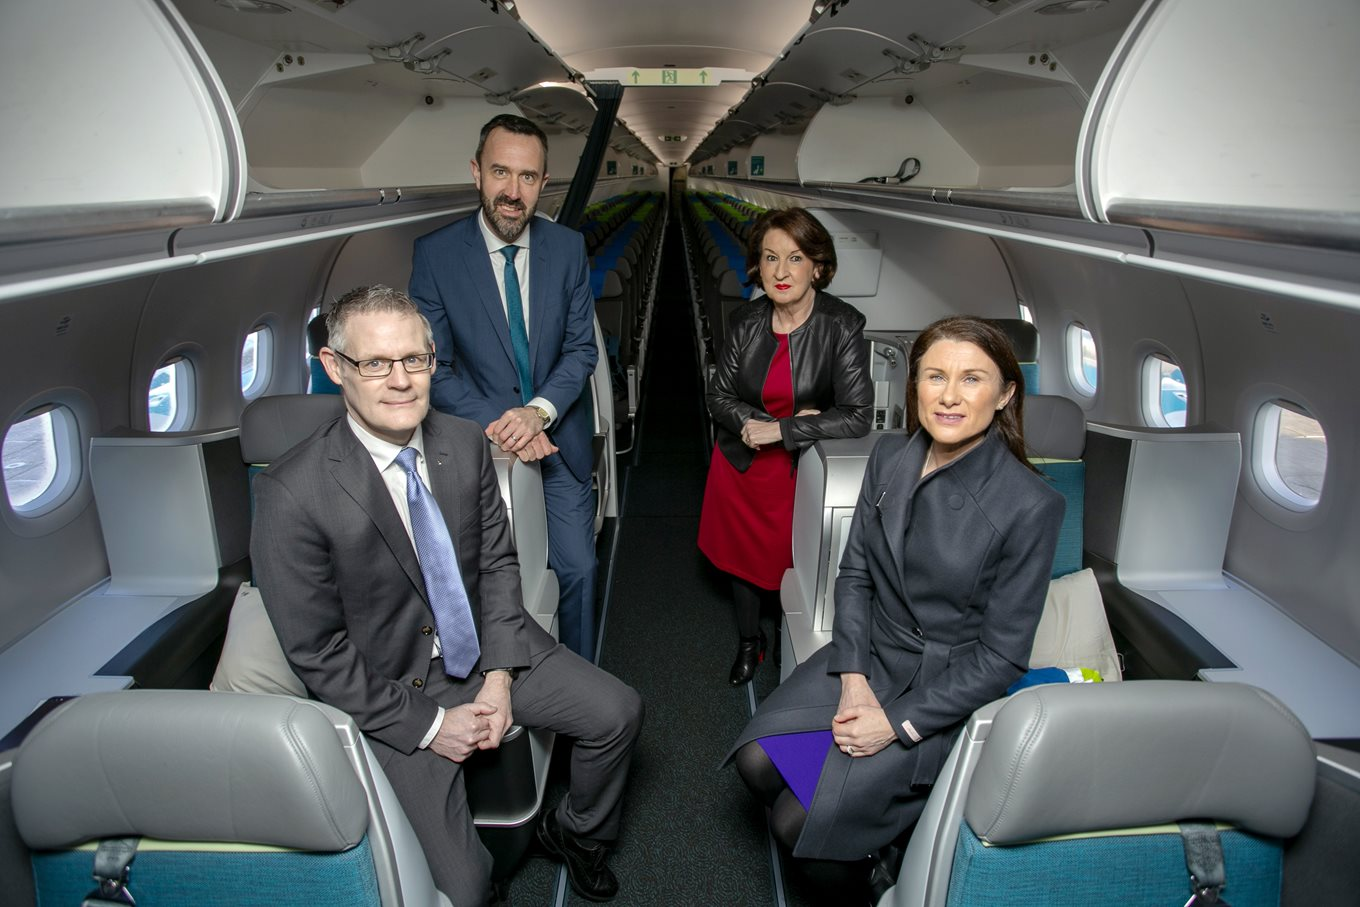 Aer Lingus launches its second new aircraft at Shannon as JFK service resumes ahead of schedule